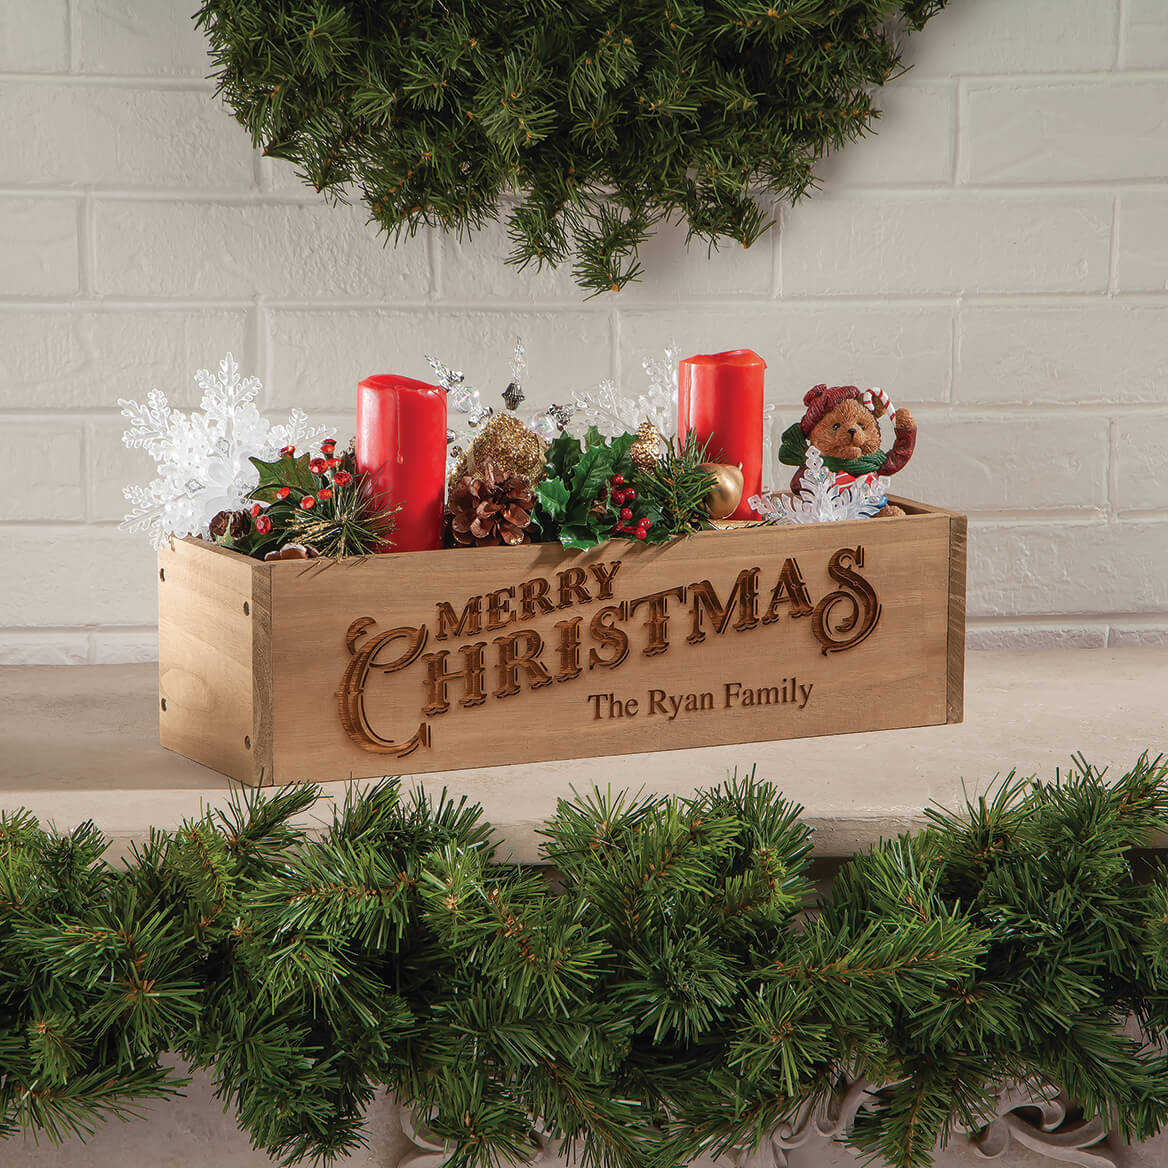 Personalized Wooden Planter Box, Merry Christmas-369255